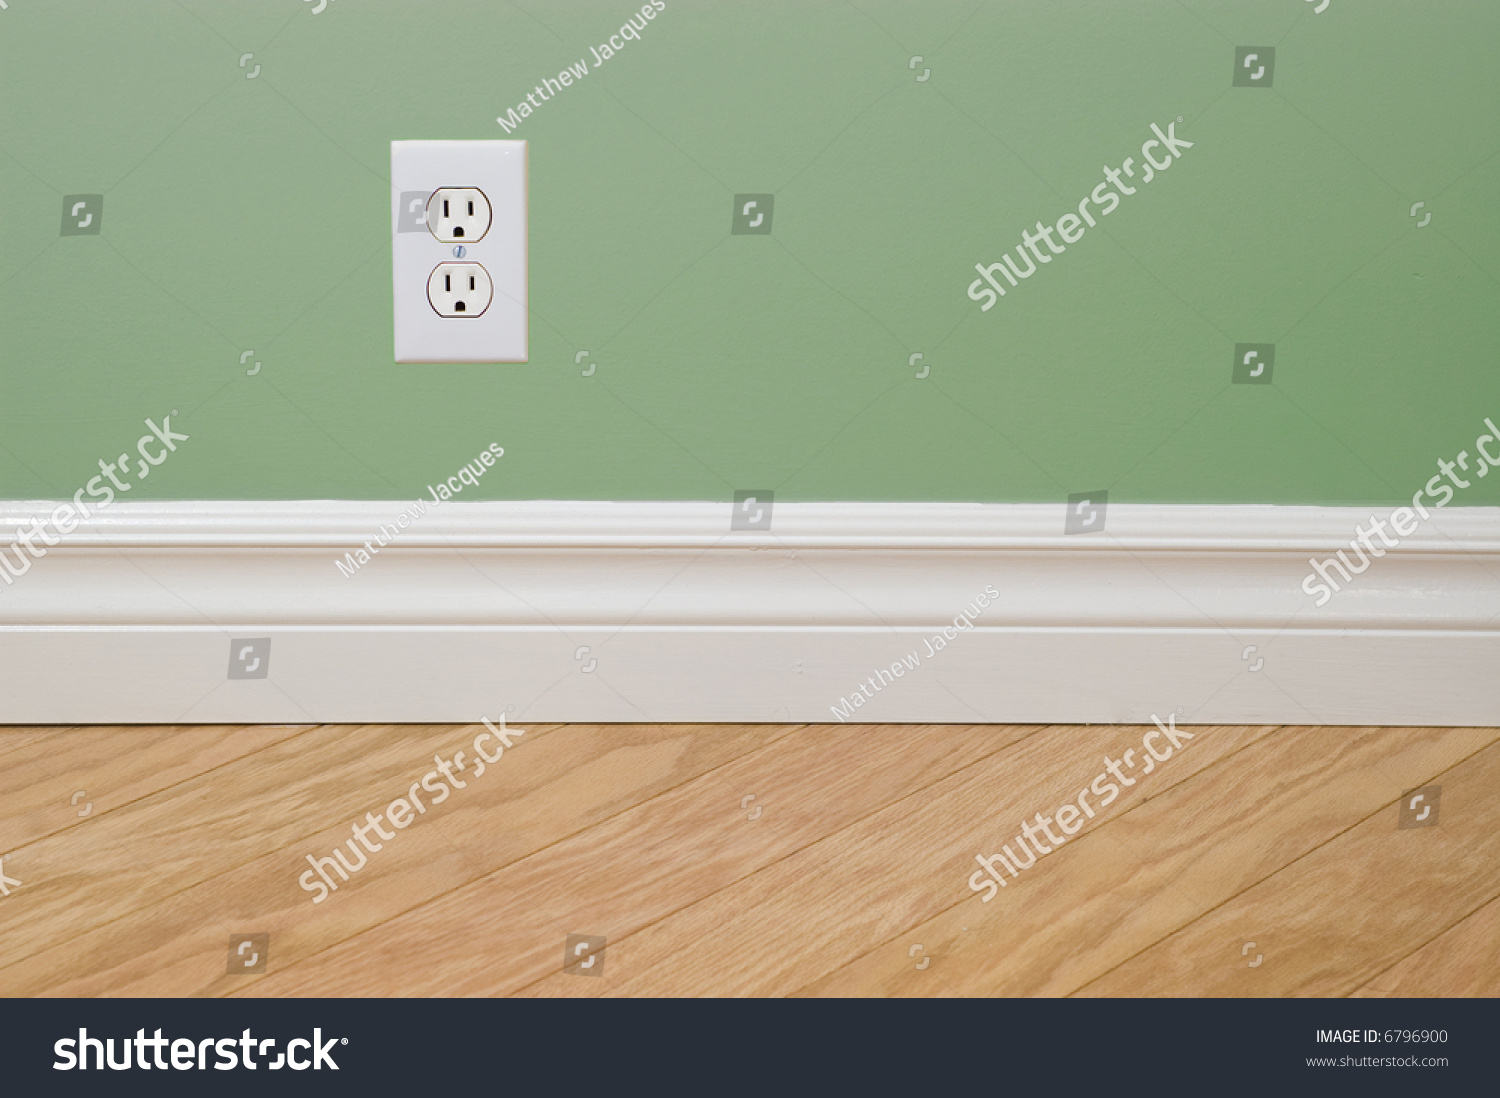 Power outlet on green wall hardwood stock photo 6796900 for Zap wood floor cleaner